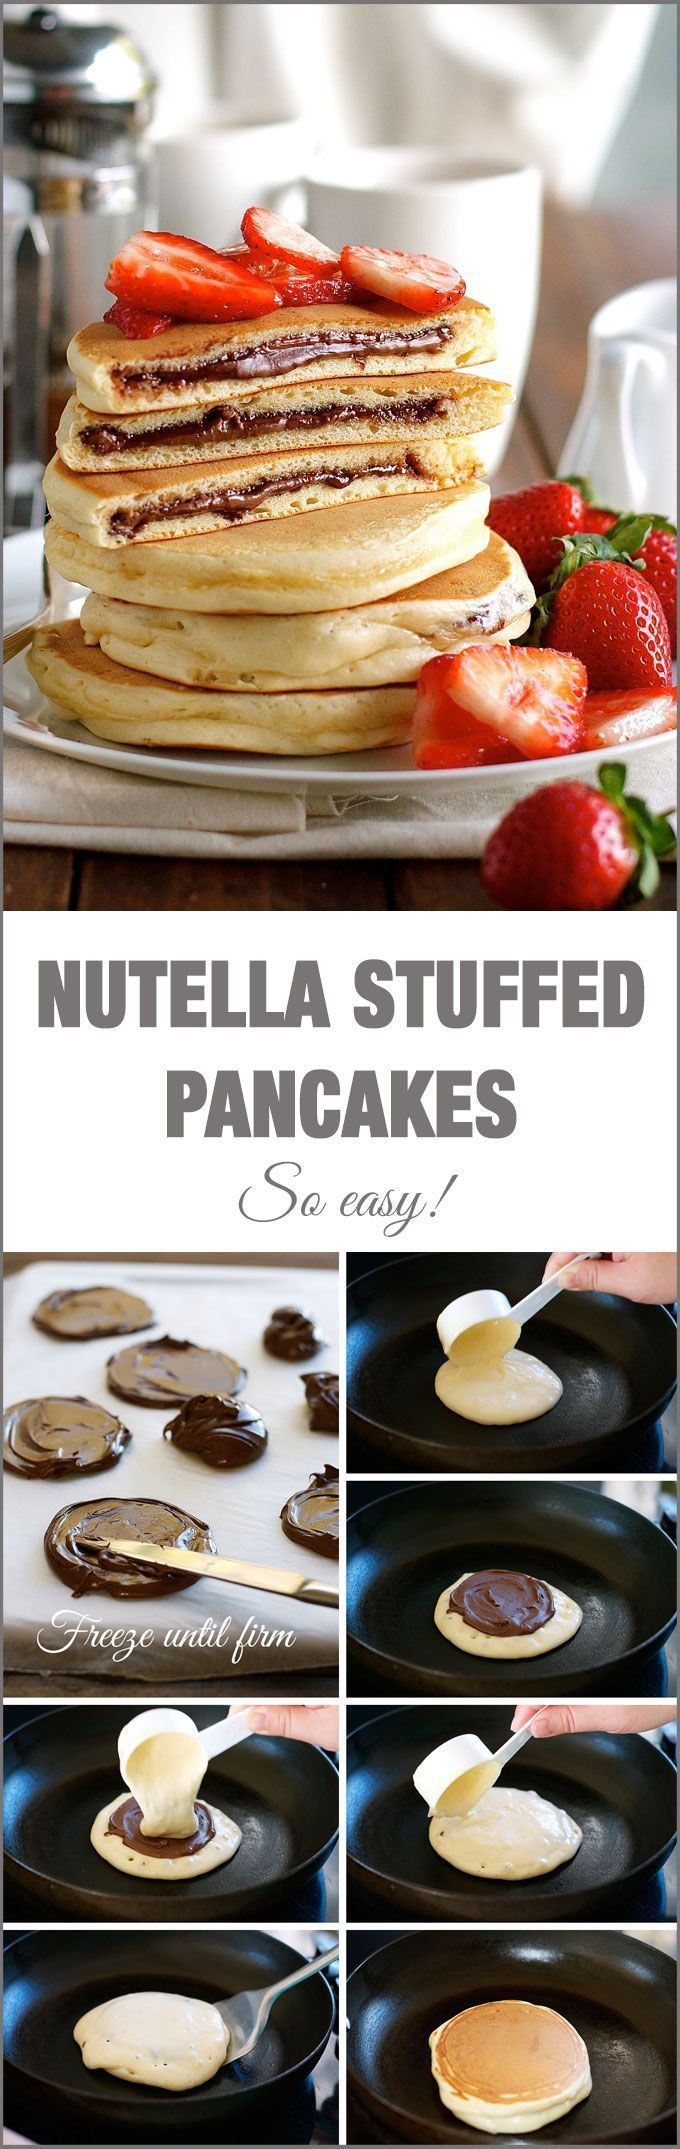 NUTELLA STUFFED PANCAKES RECIPE!!!